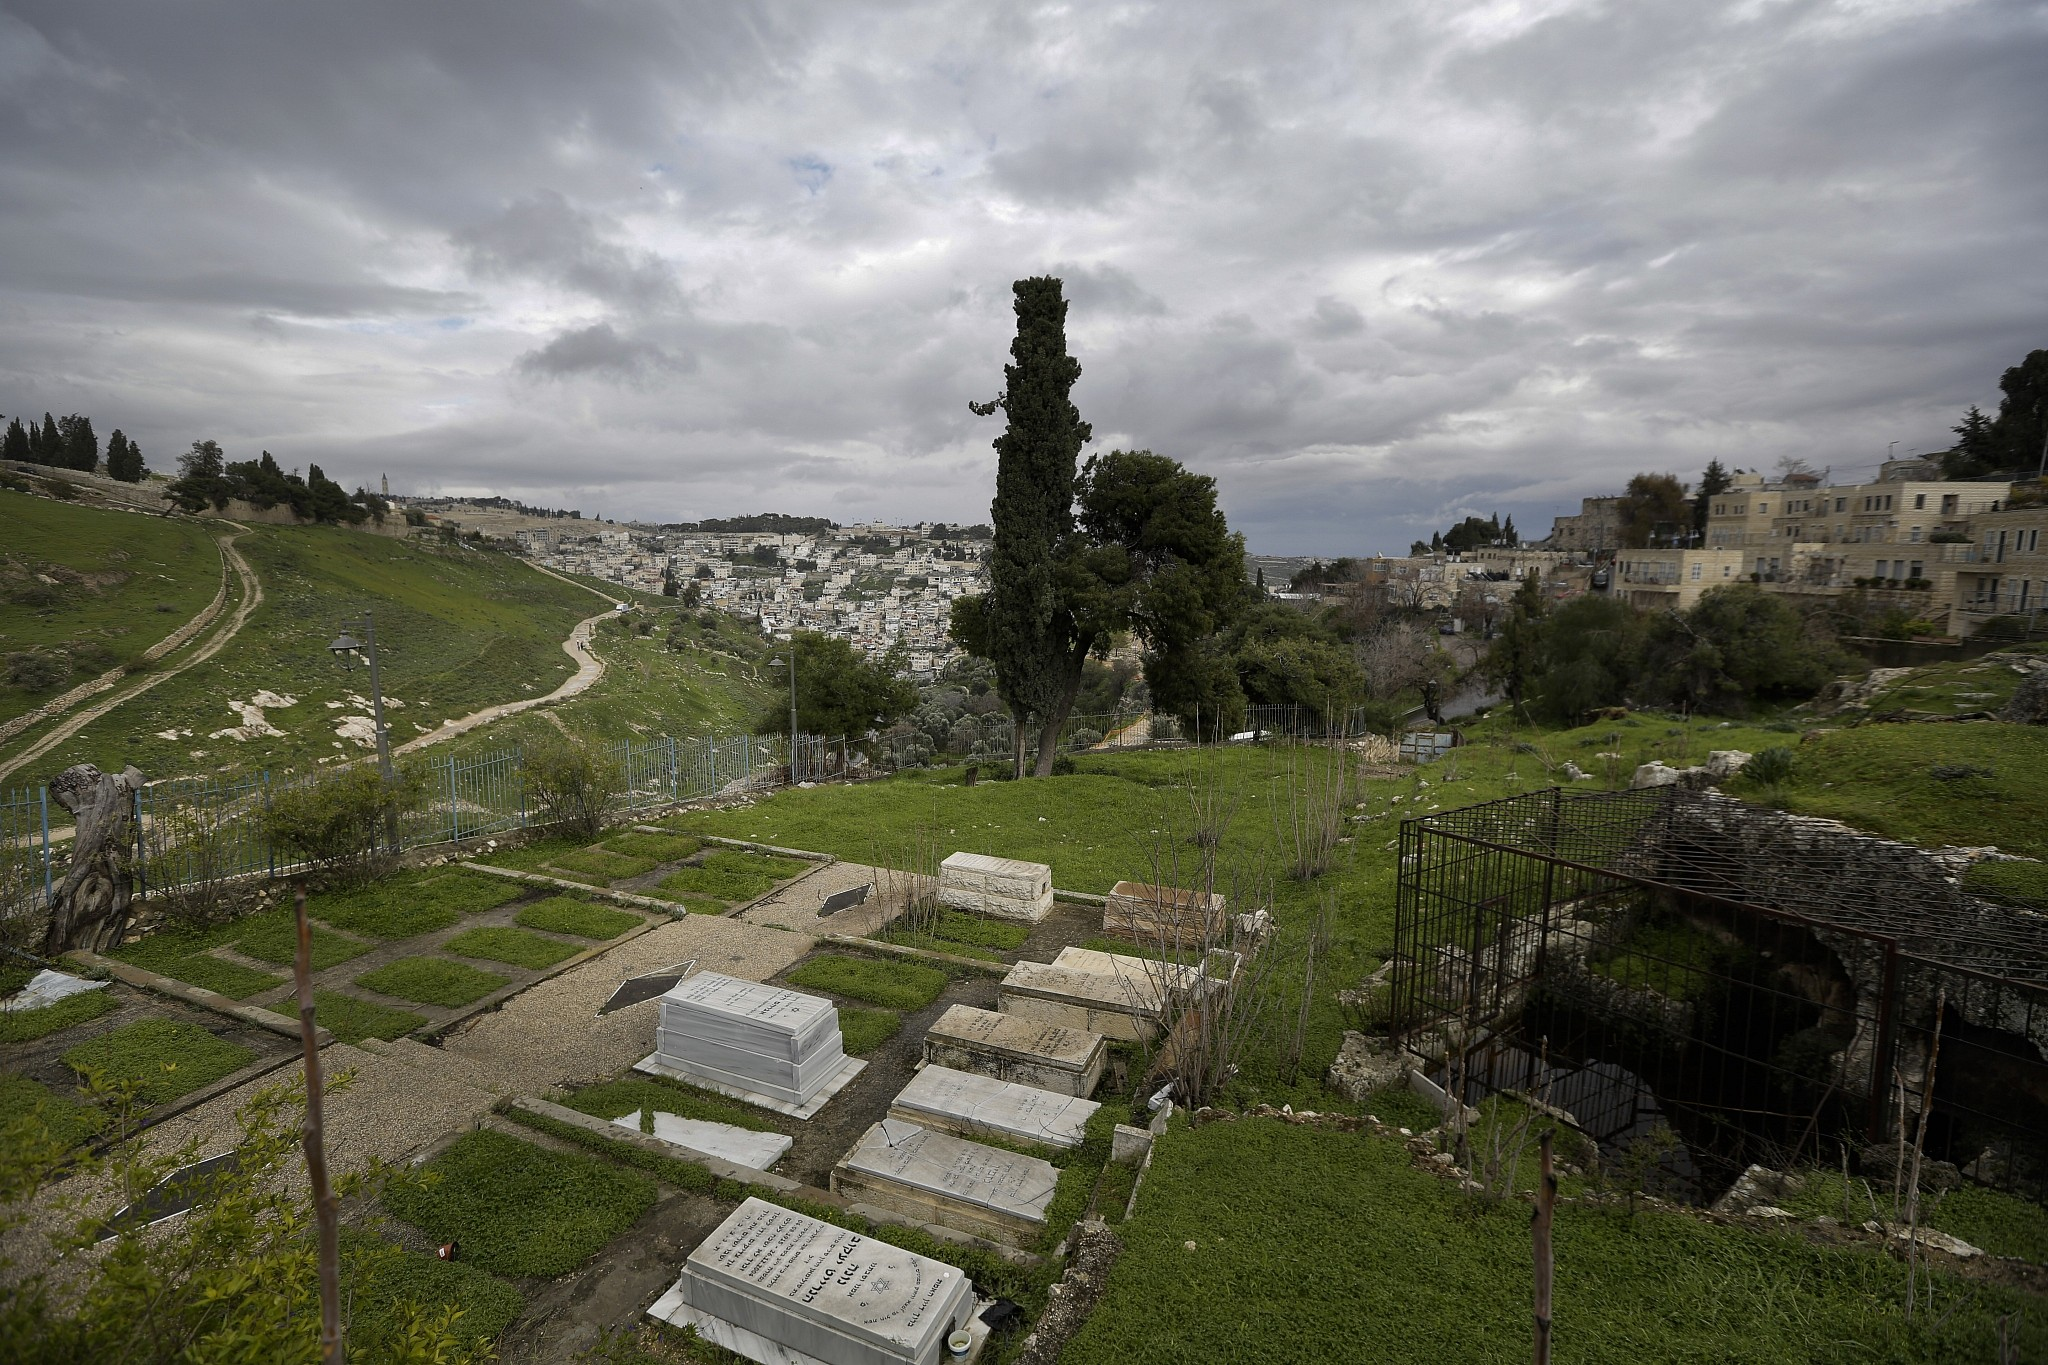 The Karaite cemetery in Jerusalem, photographed on March 2, 2019. (AP Photo/Dusan Vranic)